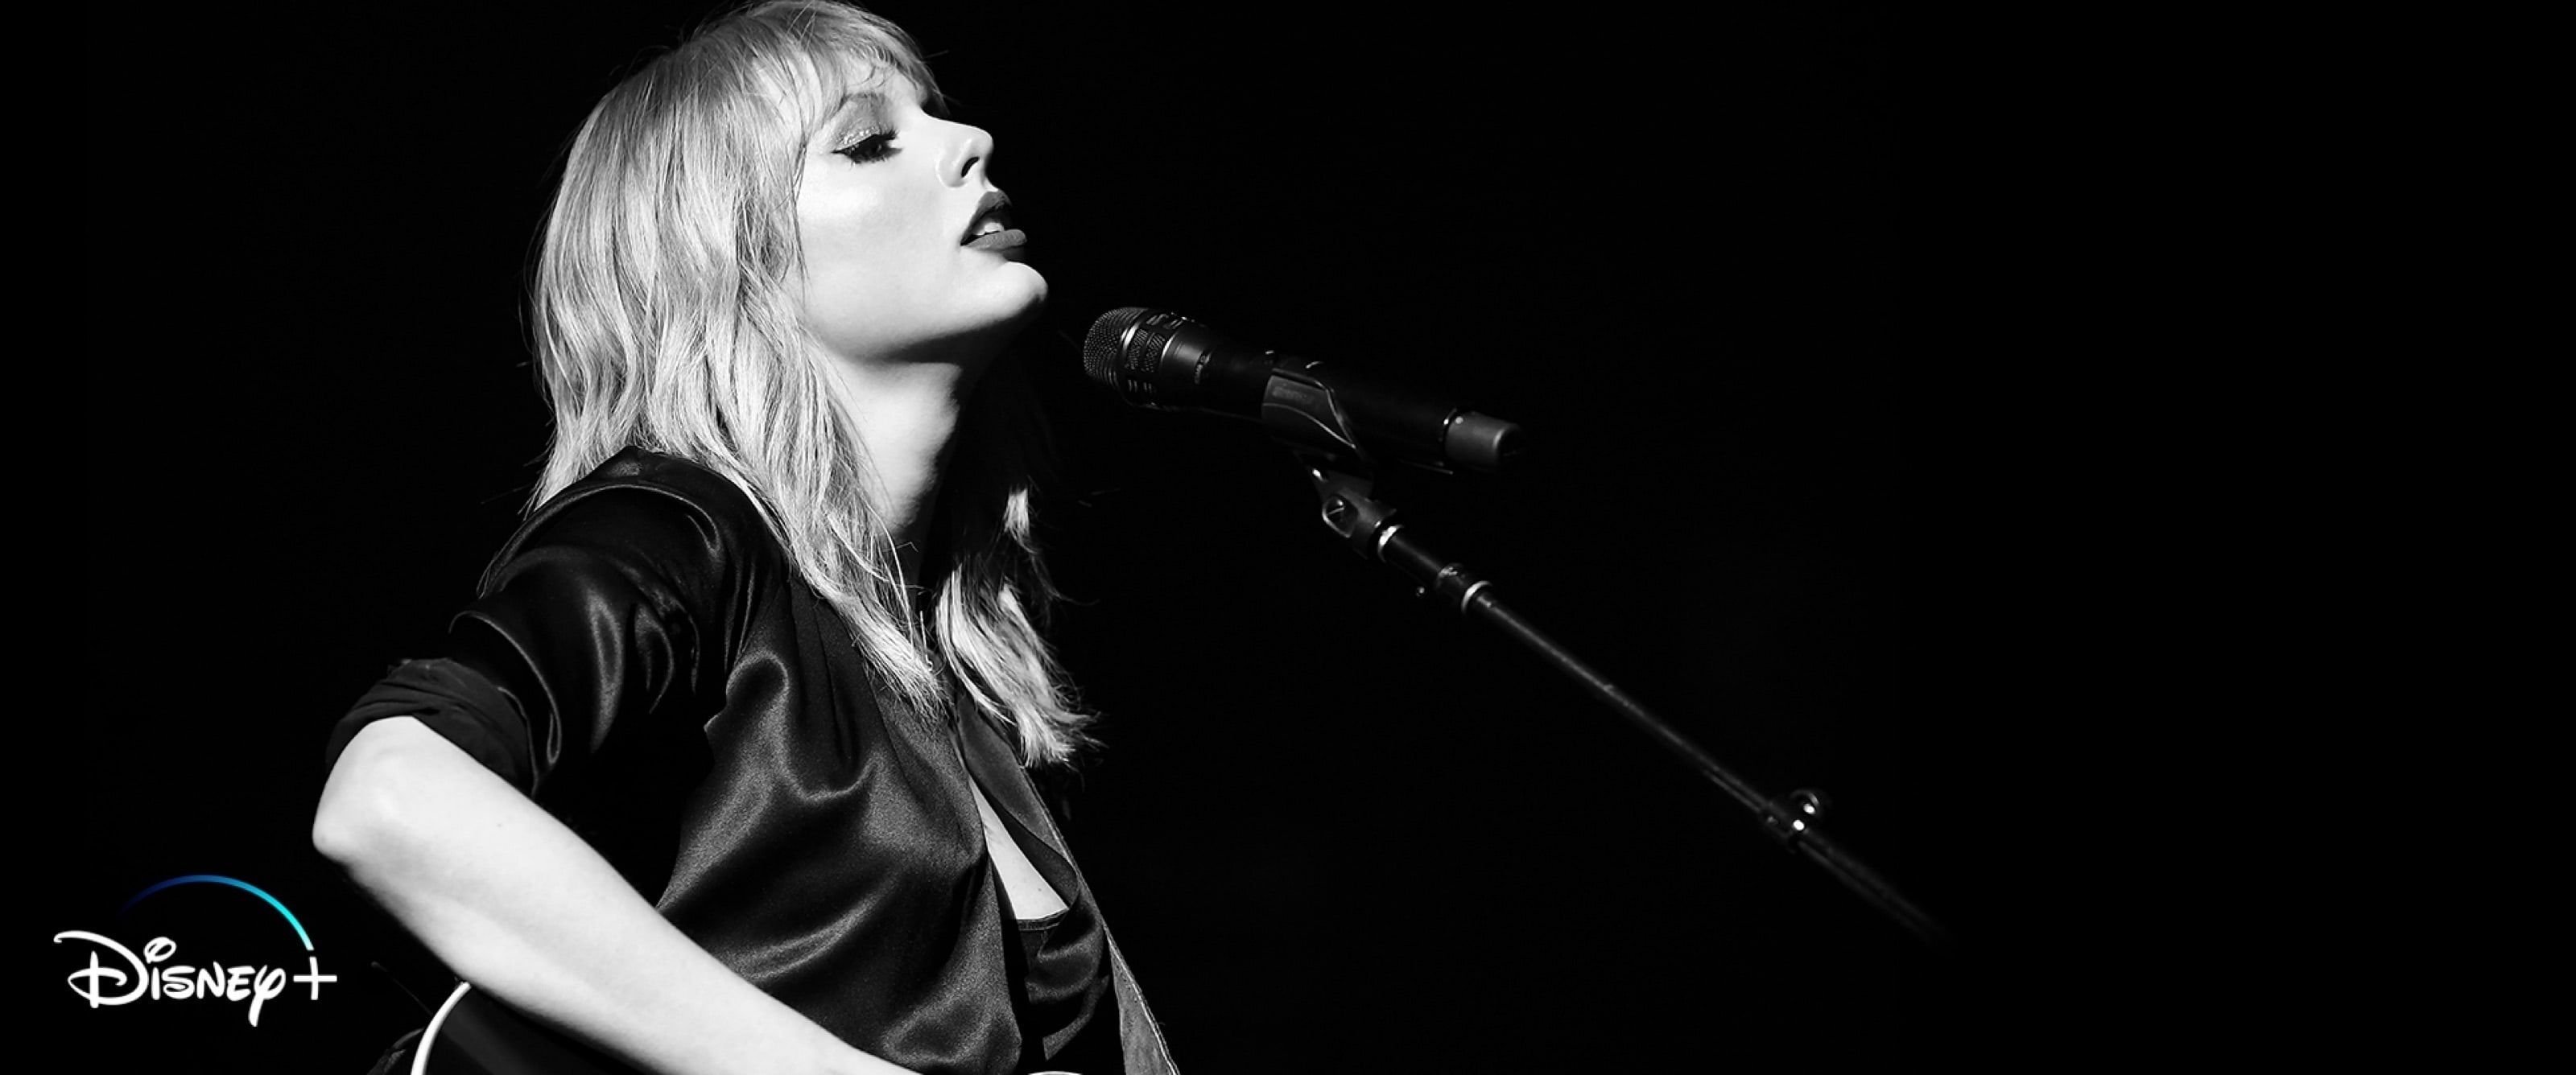 Stream Taylor Swift: City of Lover Concert on Disney+ for a limited time